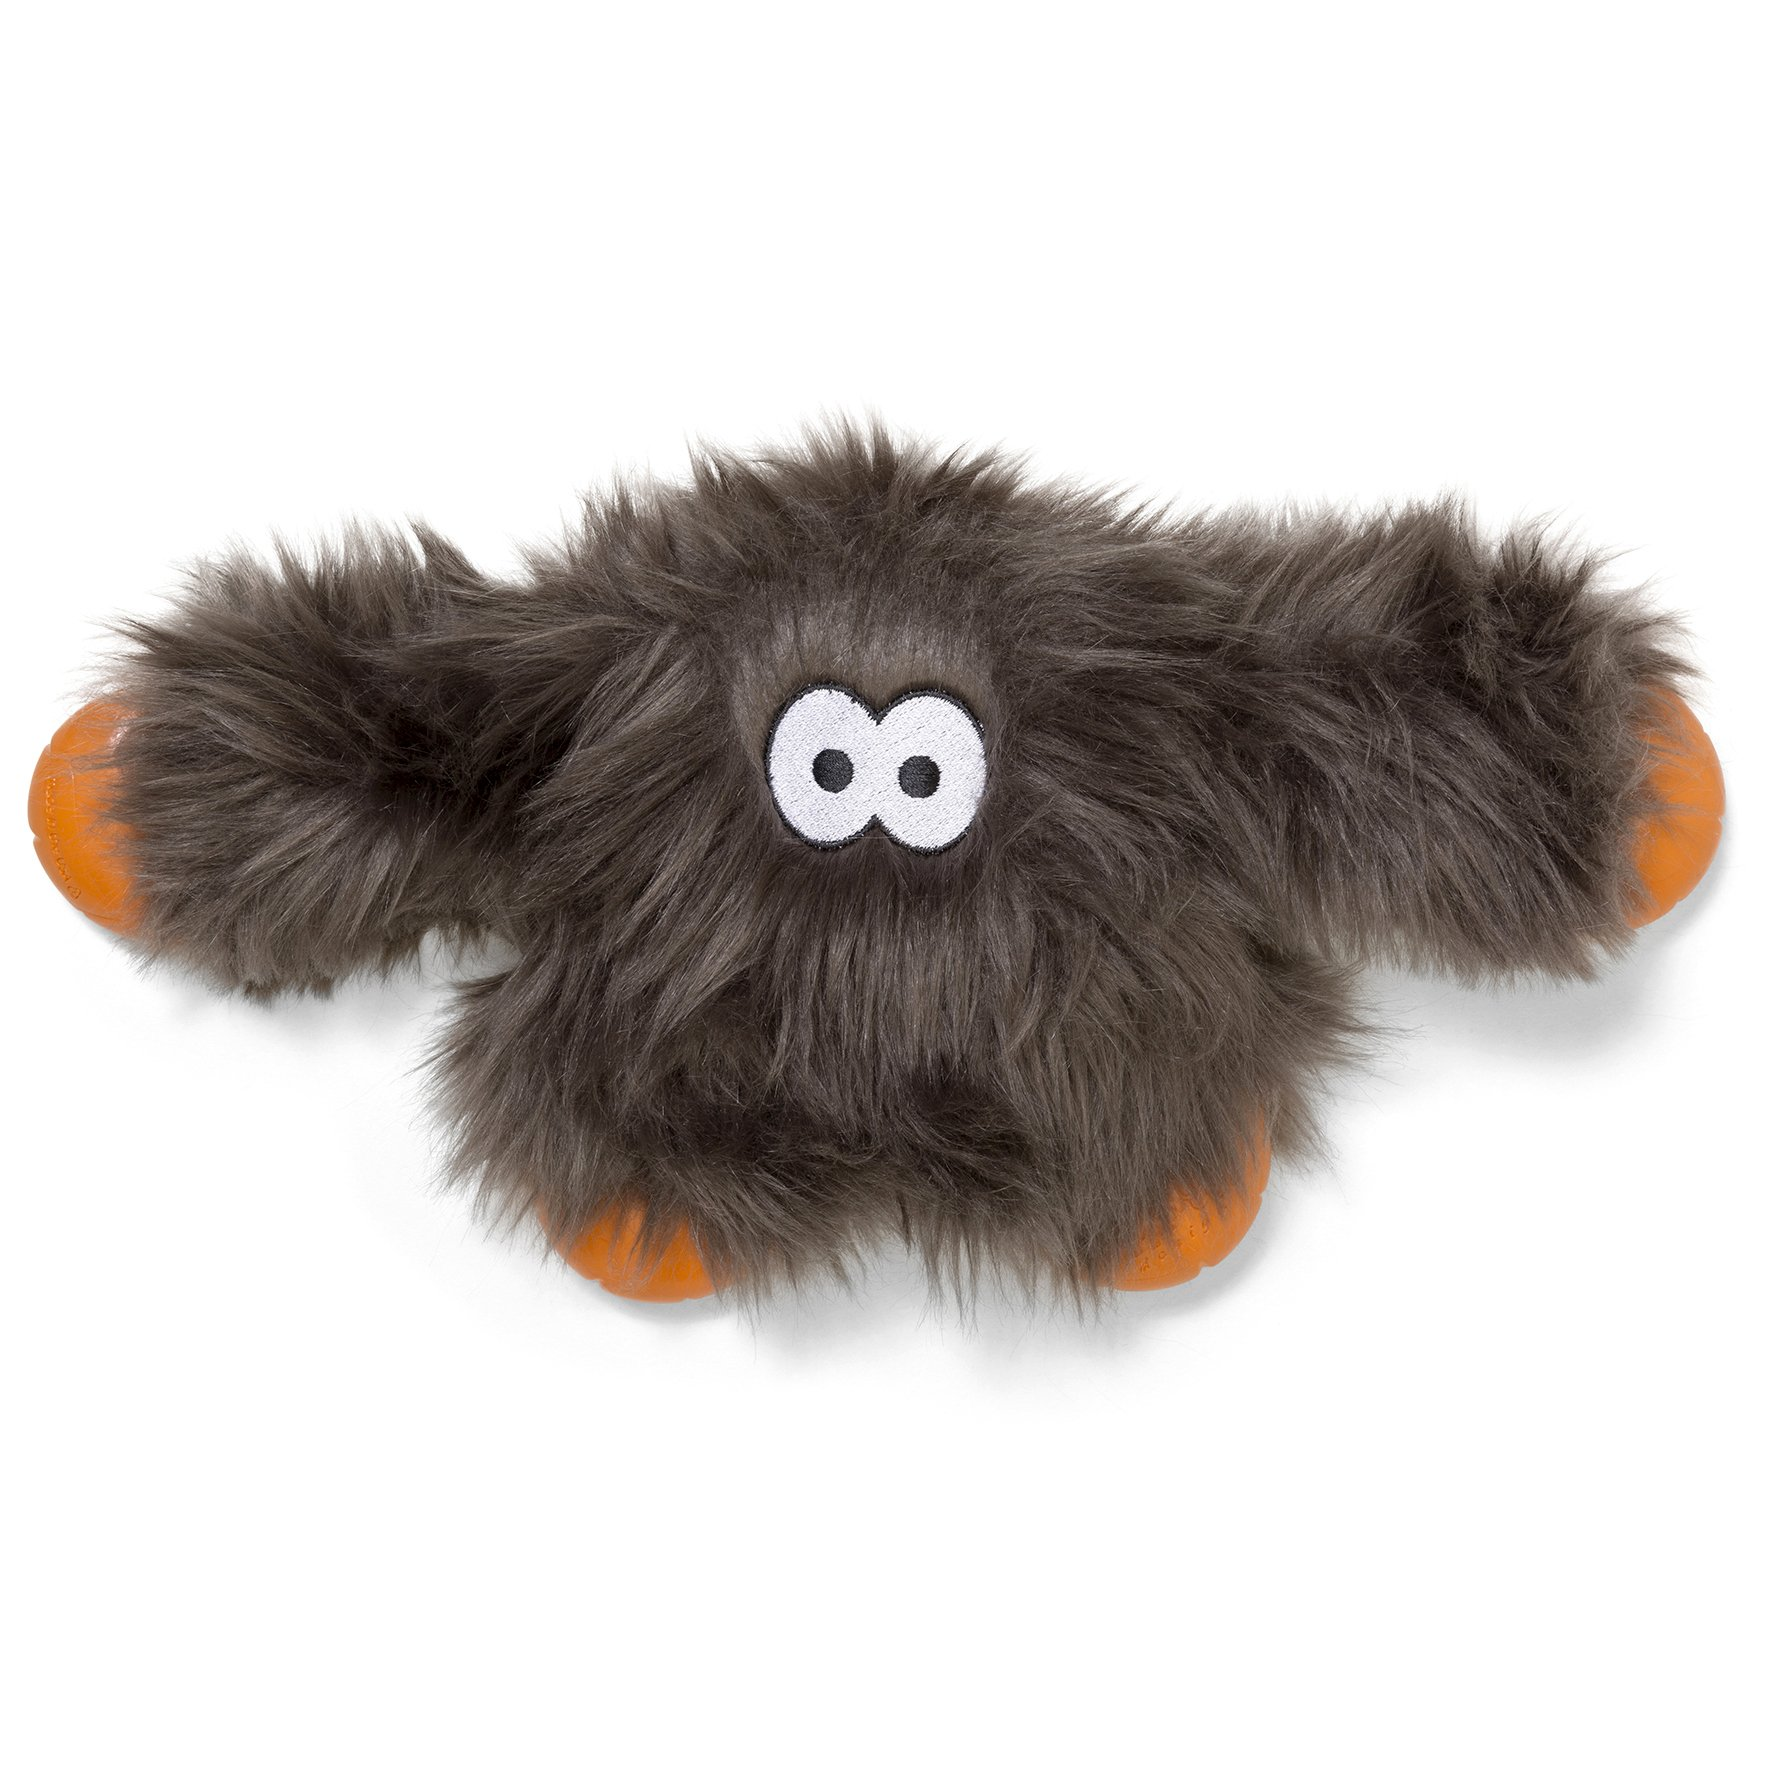 West Paw Rowdies with HardyTex and Zogoflex, Durable Plush Dog Toy for Medium to Large Dogs, Jefferson, Pewter Fur by West Paw Design